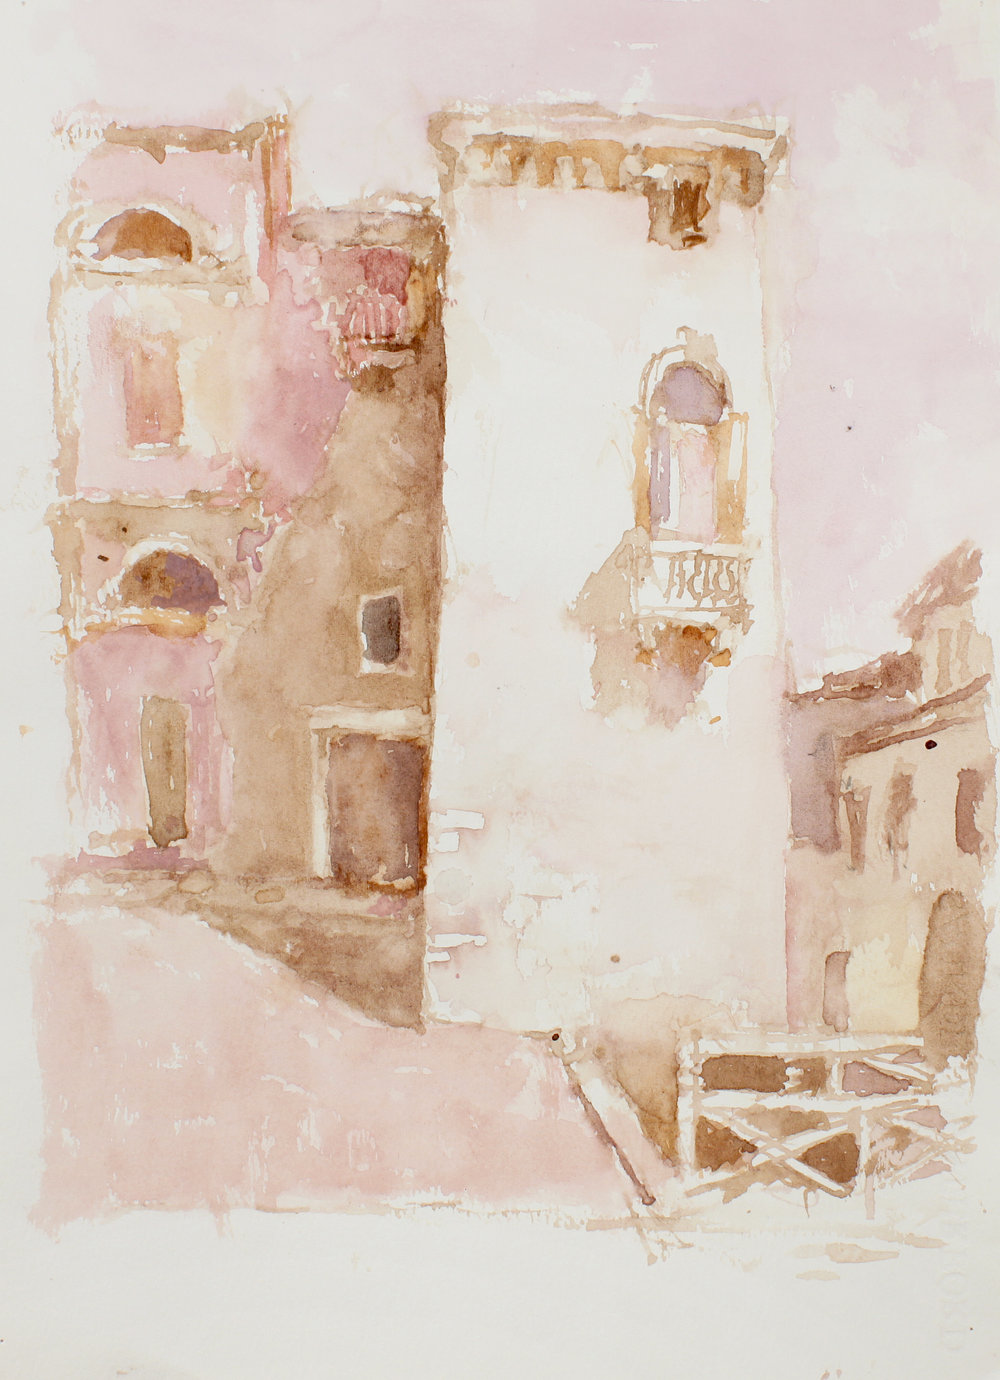 2007_Campiello_Church_of_San_Franceco_Venice_watercolour_on_paper_15x11in_WPF254.jpg